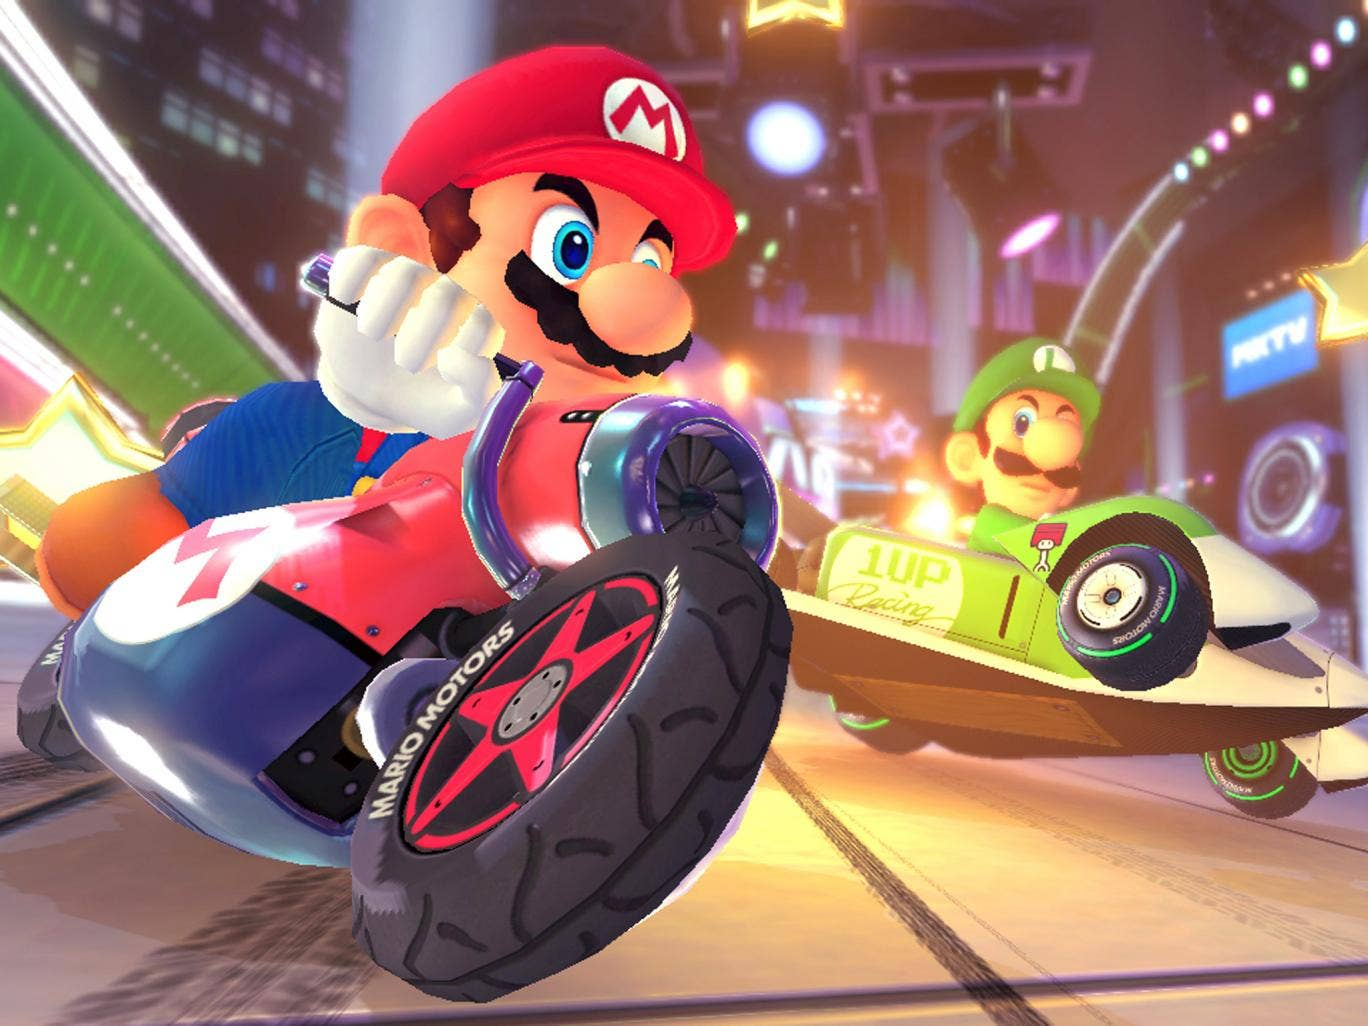 Much-loved characters such as Mario and Luigi have forged the Nintendo brand